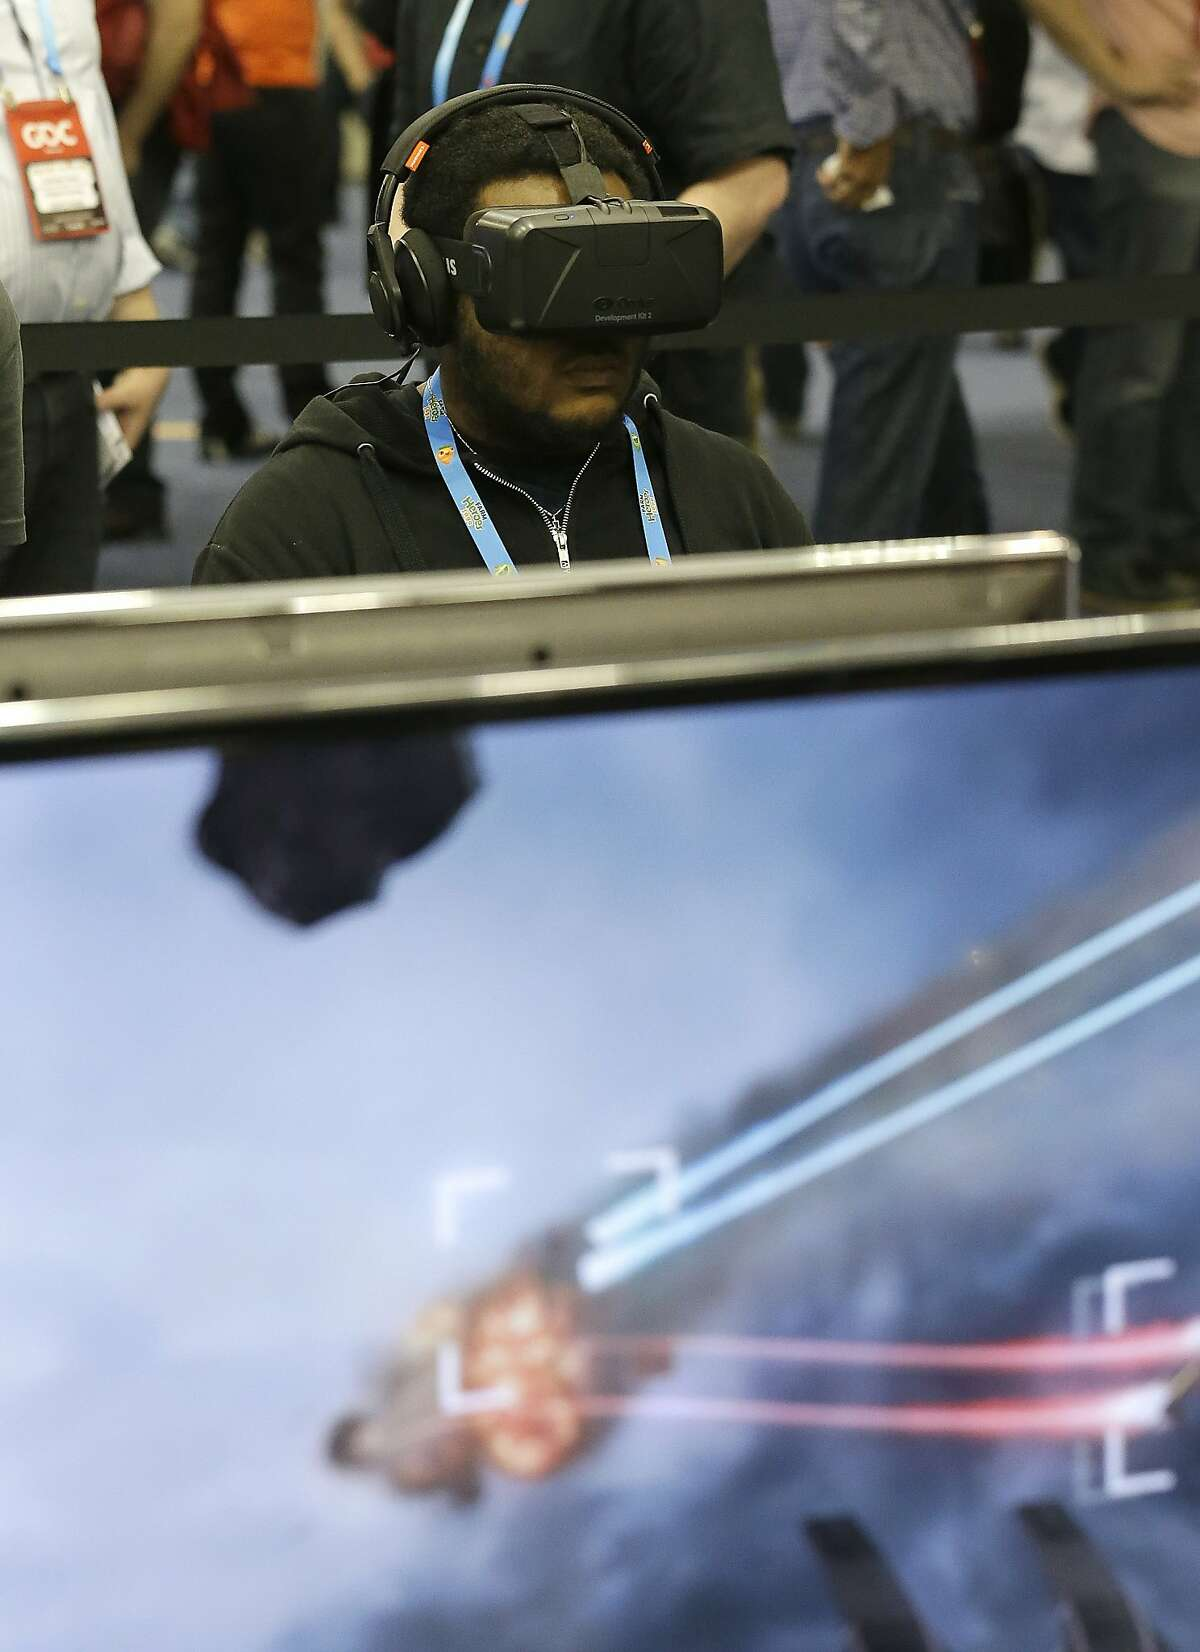 Gabriel Burgess tests out the Oculus virtual reality headset at the Game Developers Conference 2014 in San Francisco, Wednesday, March 19, 2014. (AP Photo/Jeff Chiu)